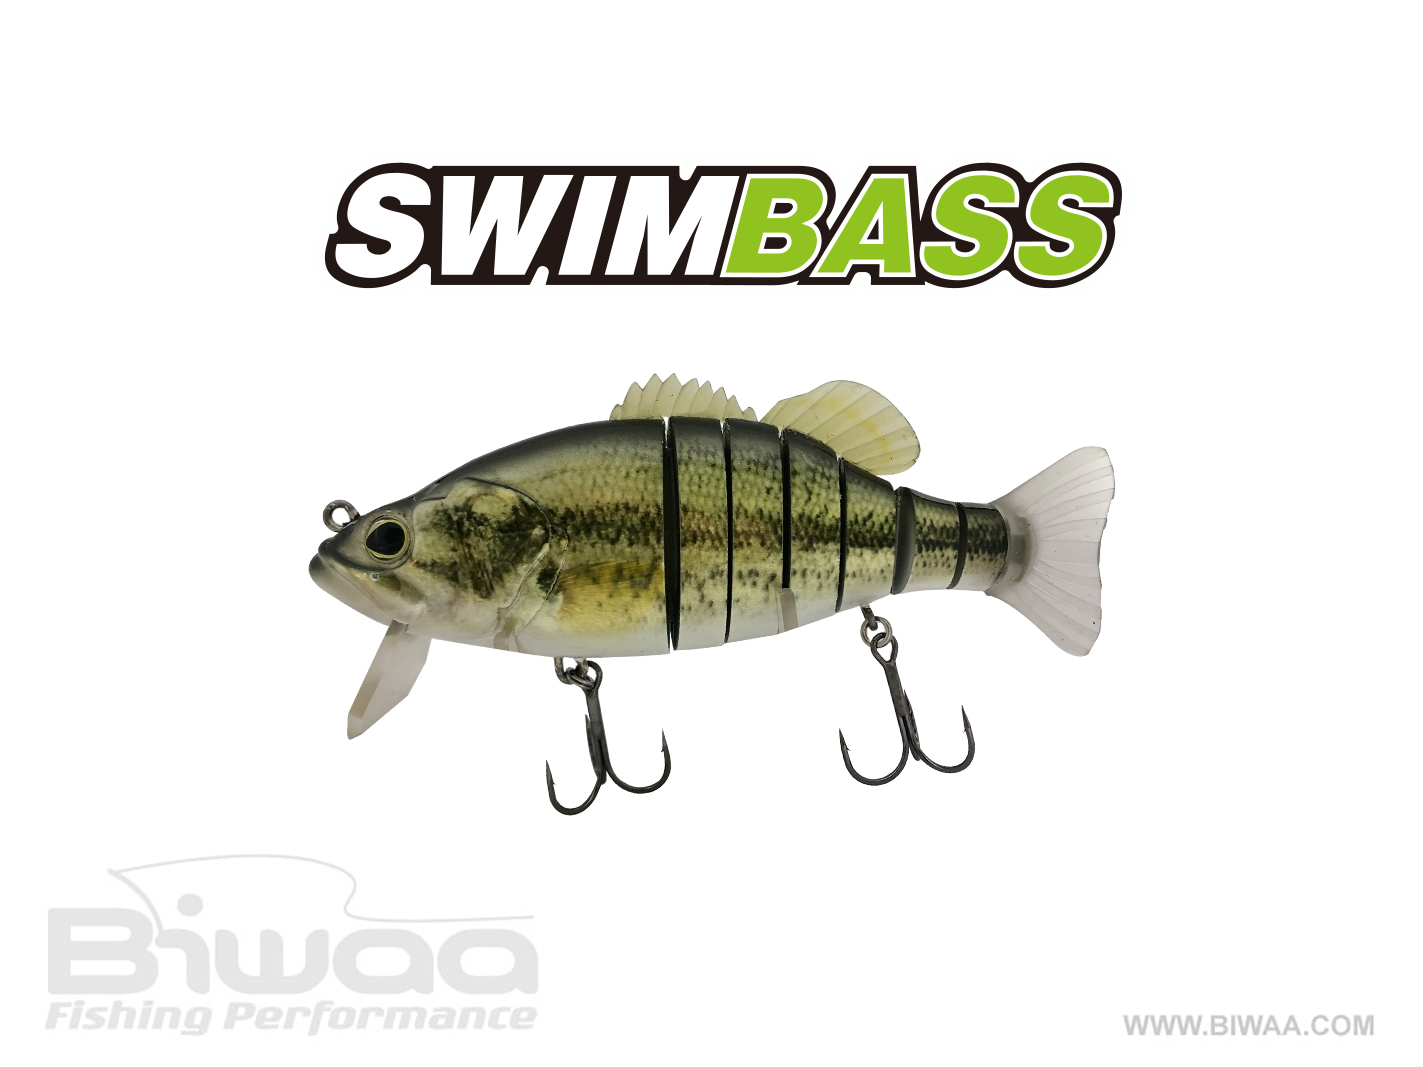 Biwaa Swimbass